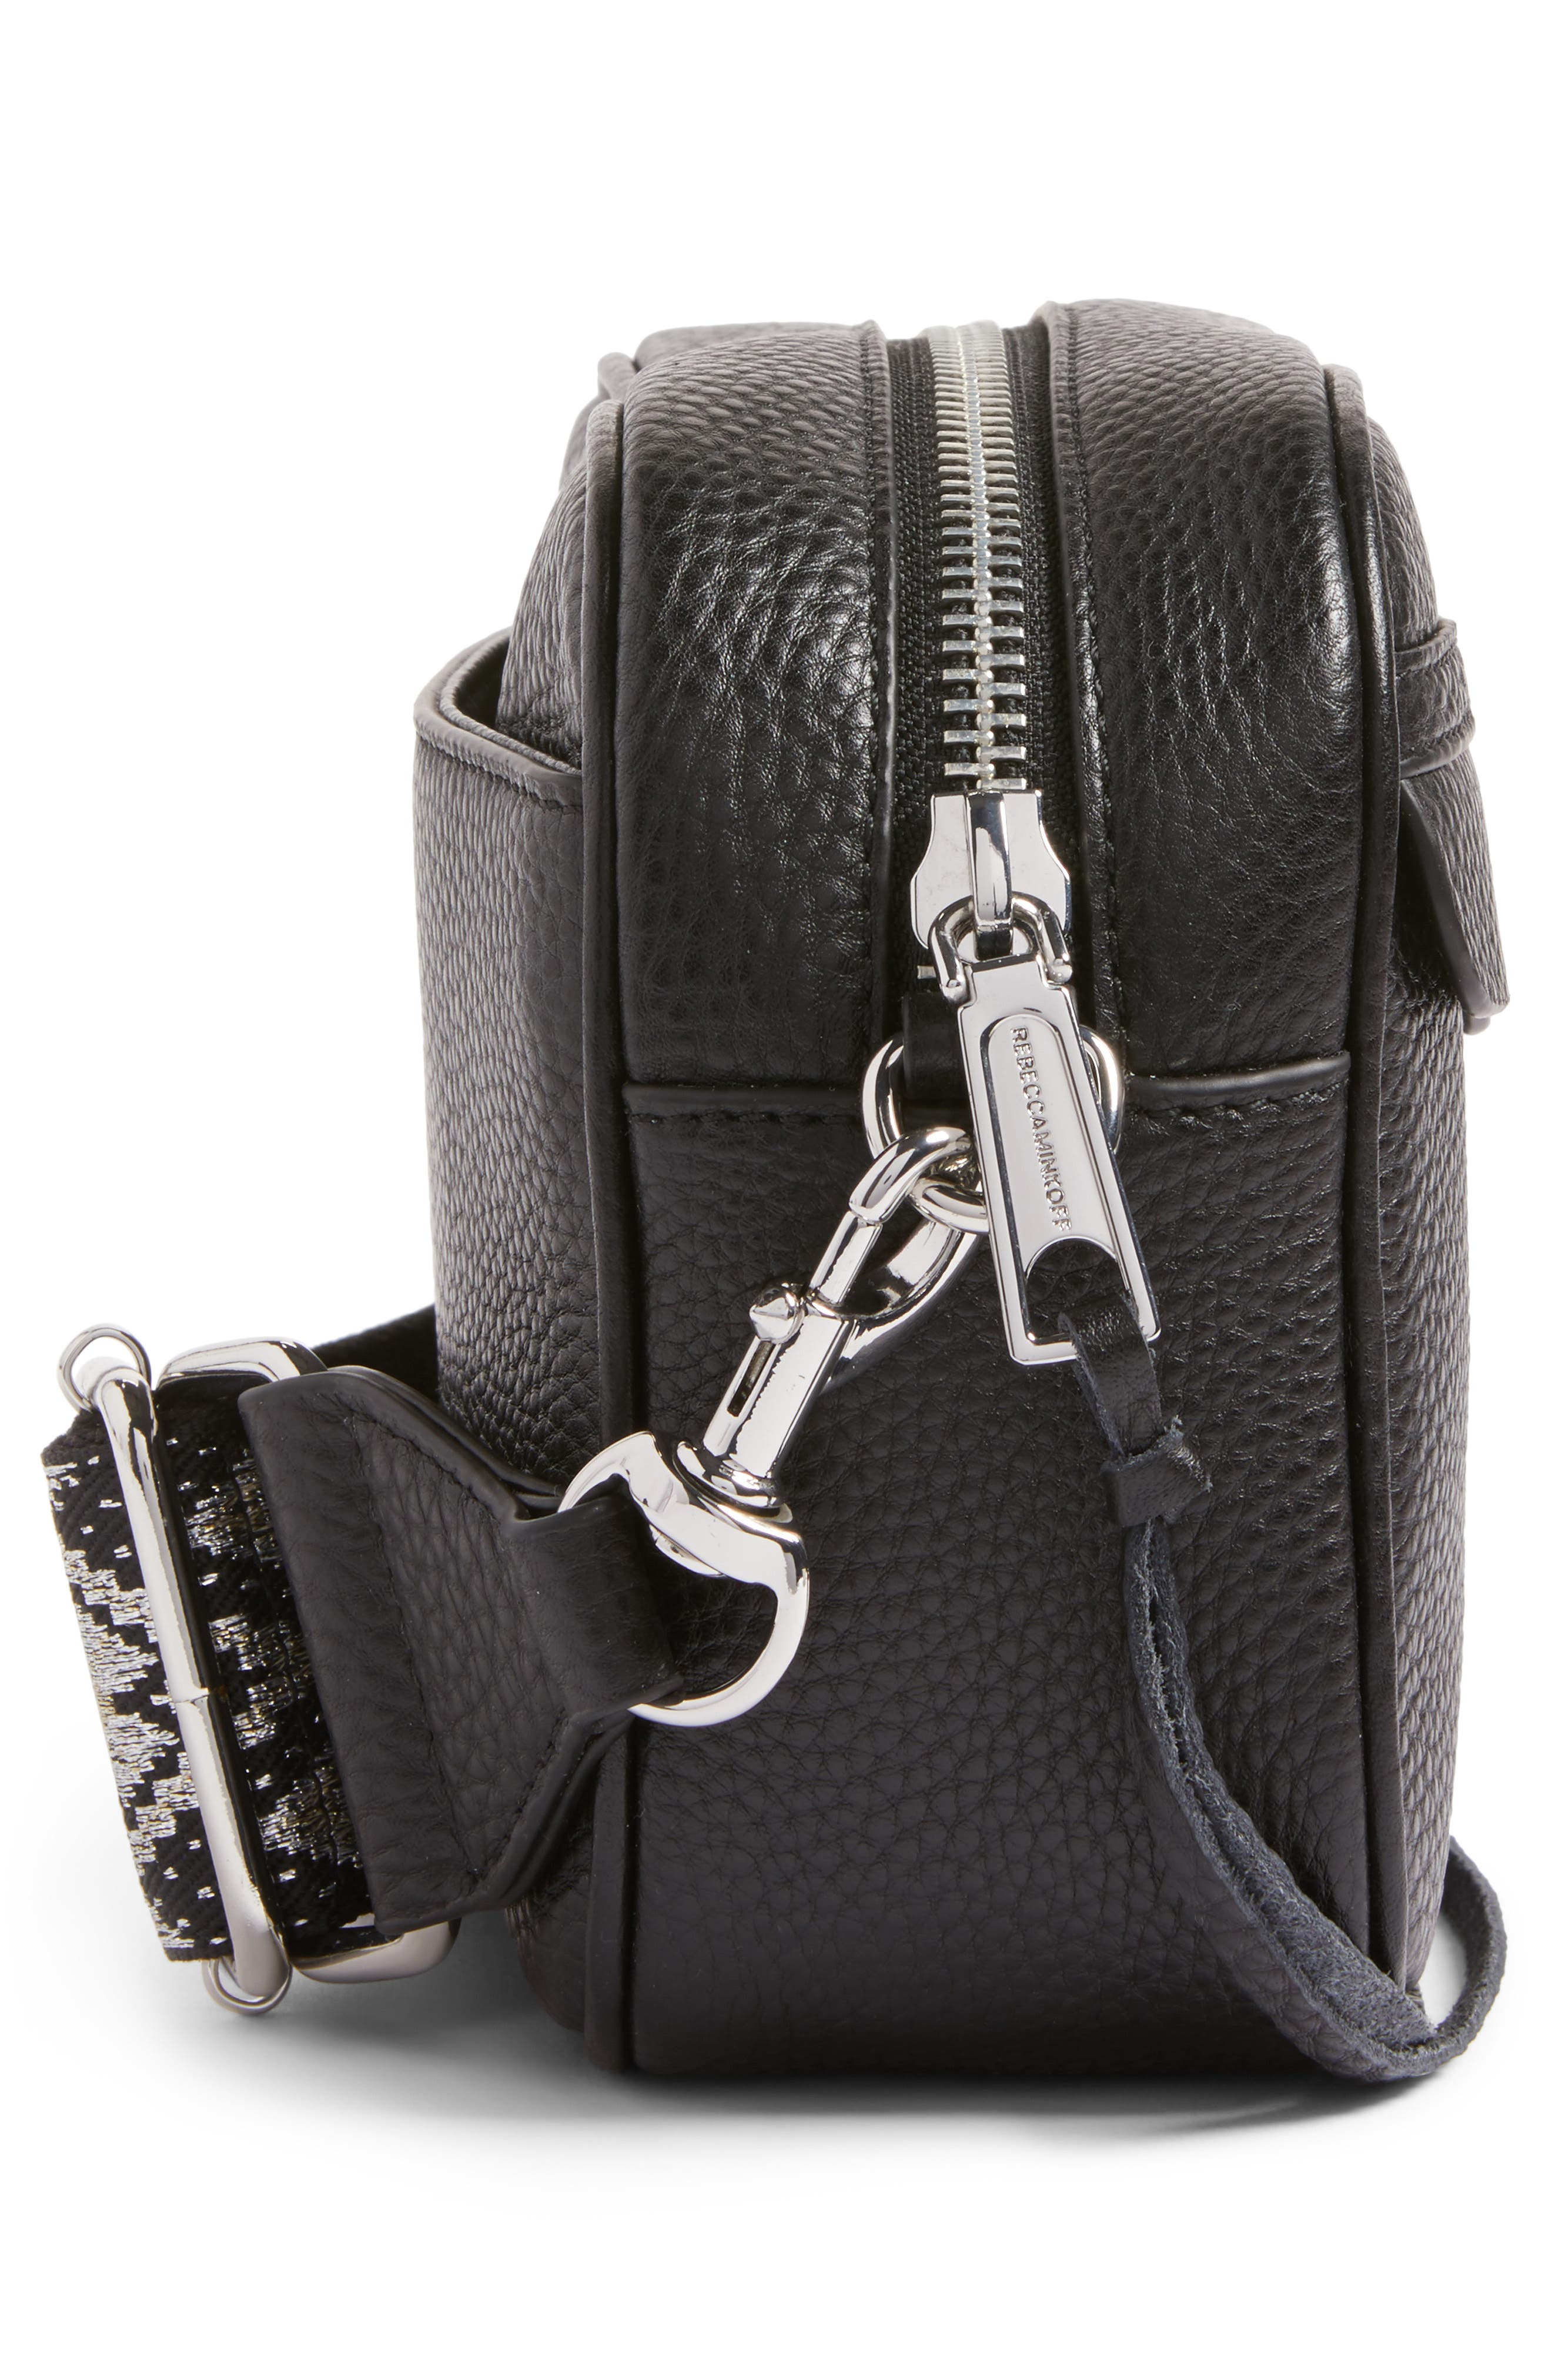 Leather Camera Bag with Guitar Strap,                             Alternate thumbnail 6, color,                             Black/ Silver Hardware